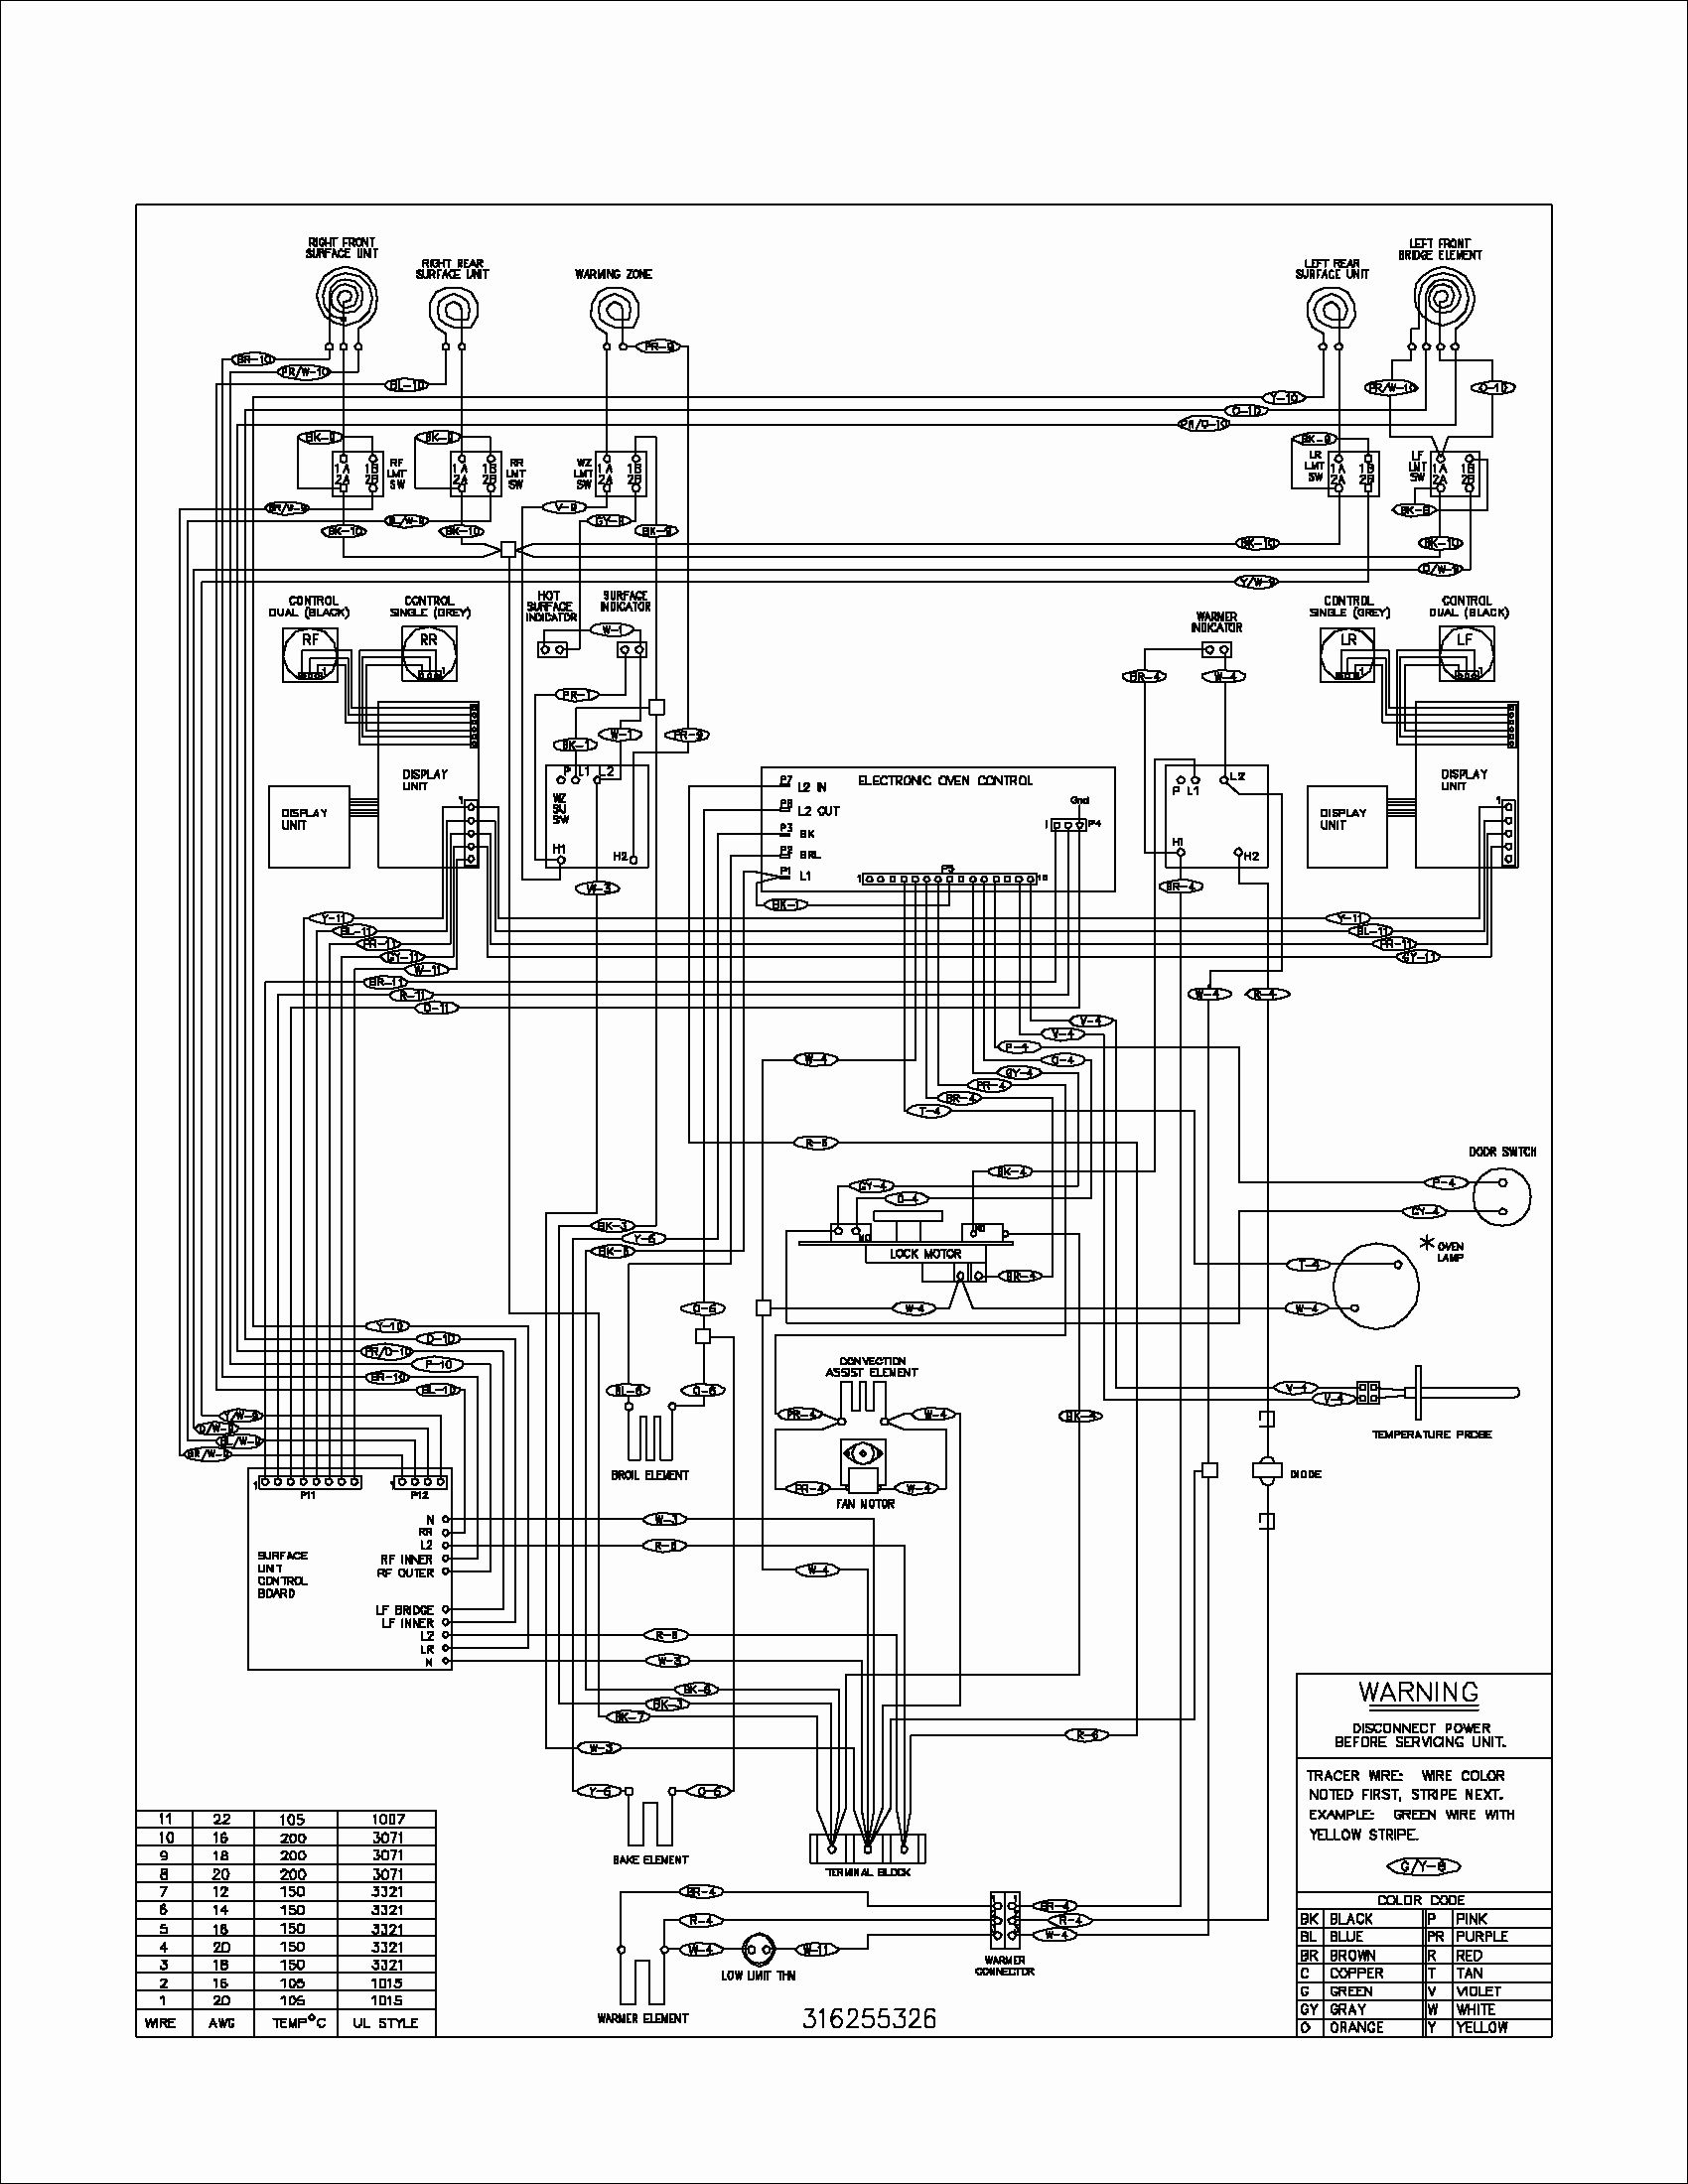 Intertherm E2eb 015ha Wiring Diagram Free Wiring Diagram